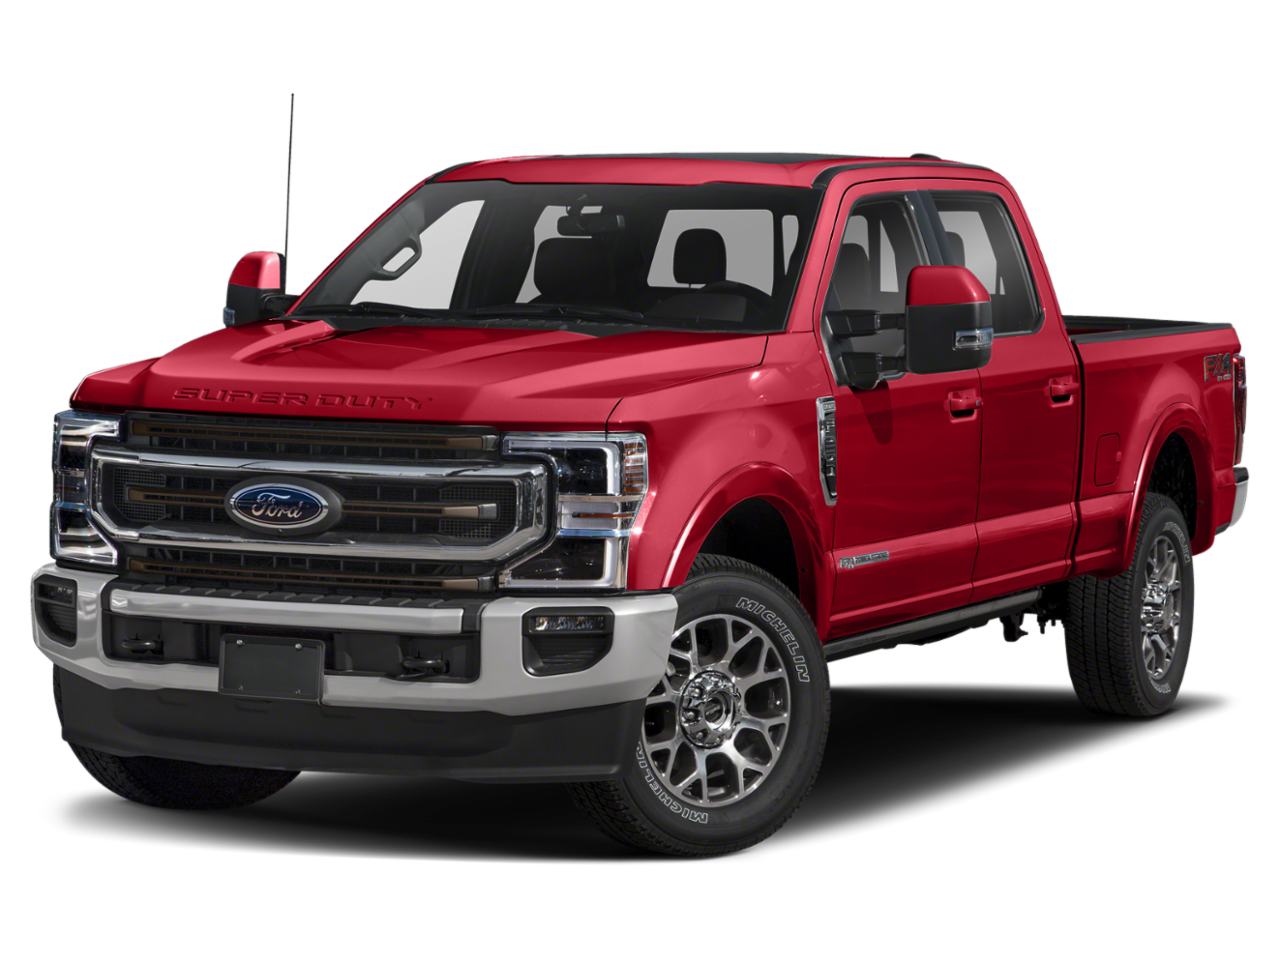 Ford 2020 Super Duty F-350 DRW King Ranch